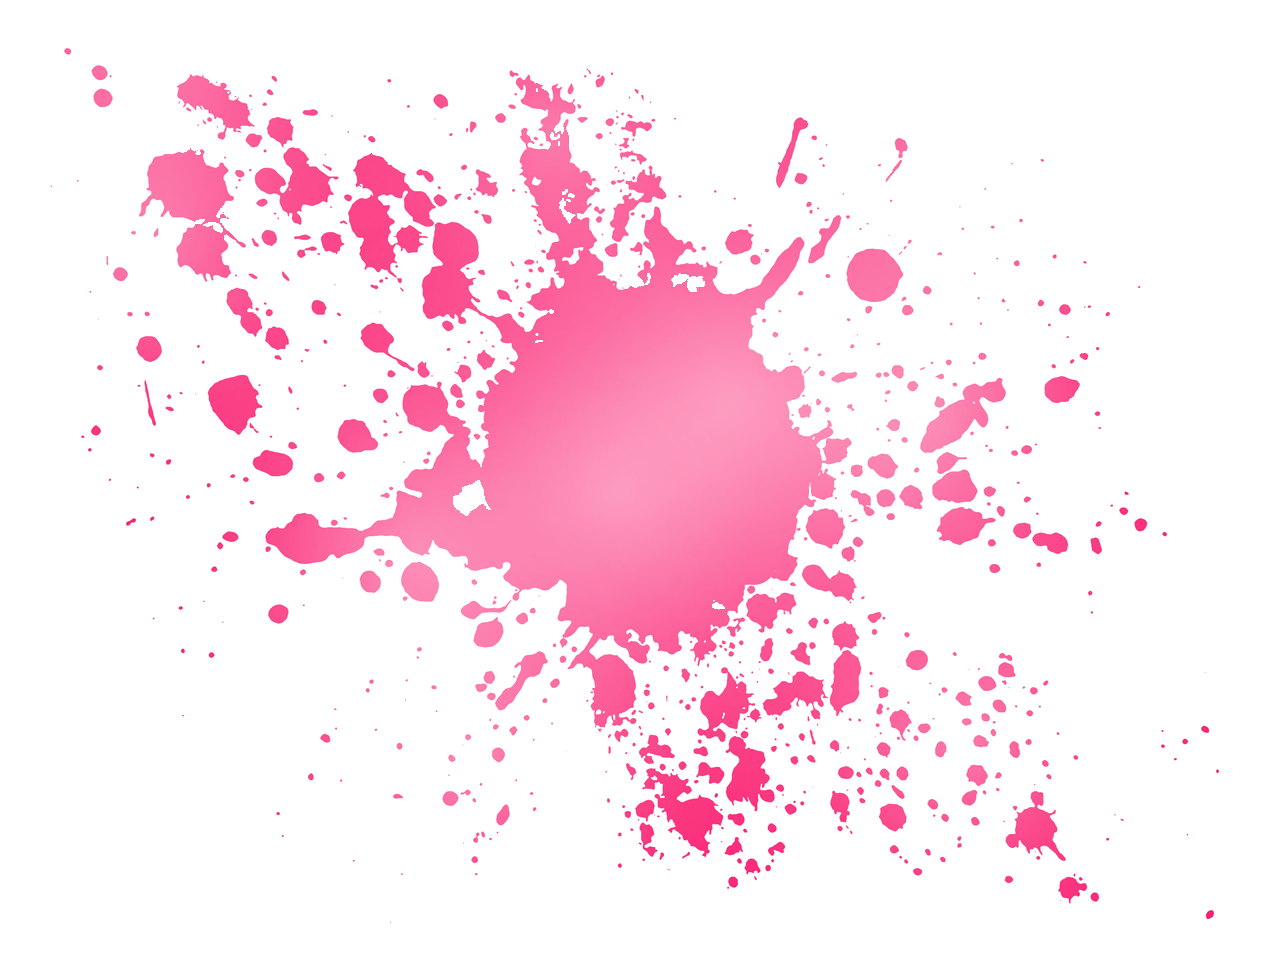 pink-splash-background-redydydydydydydyyddydydyd.png